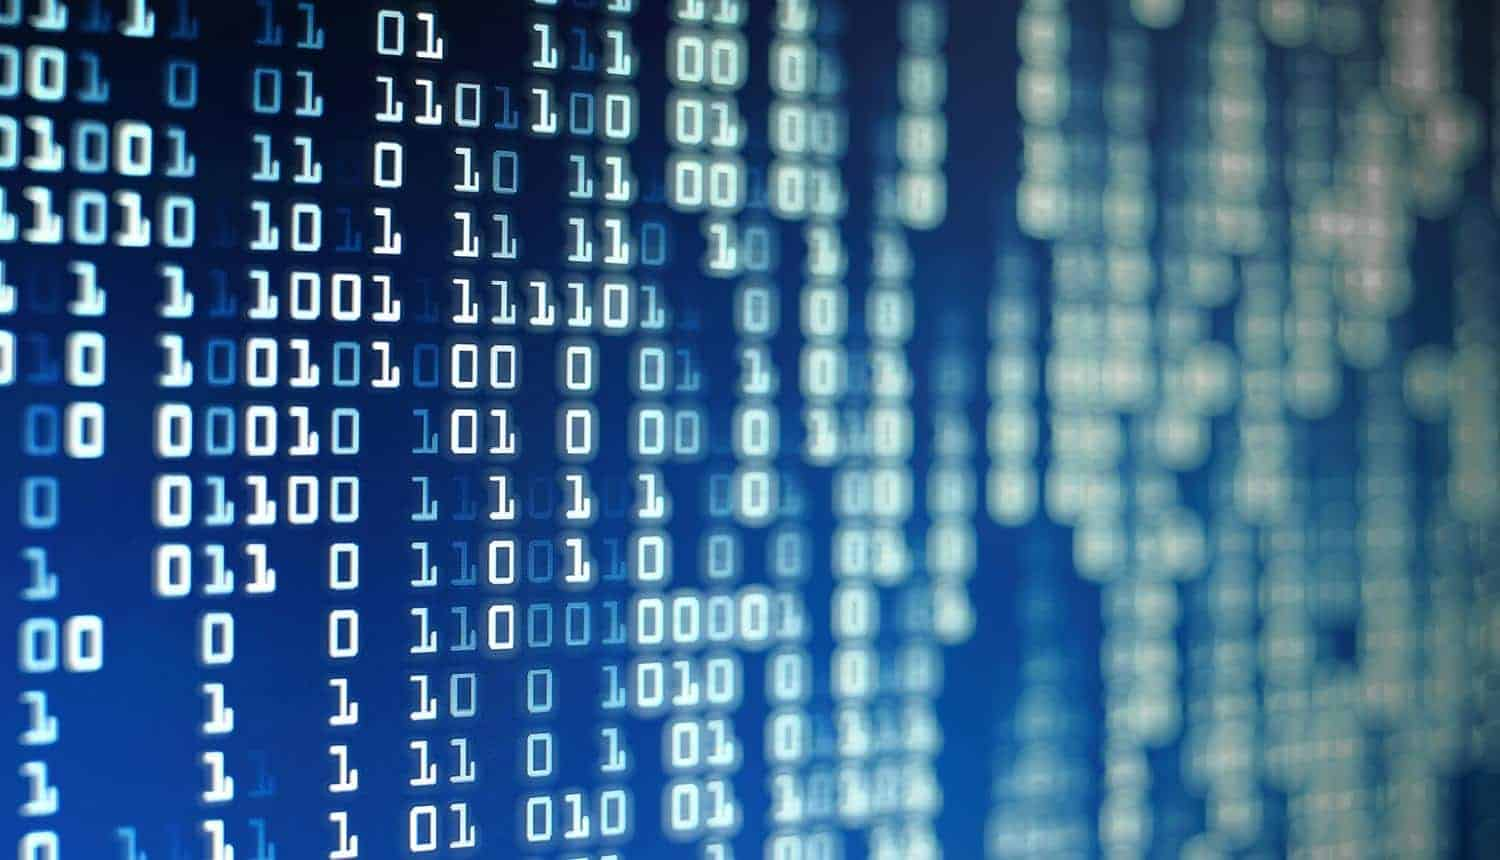 Data Literacy - Helping Enterprises Lead with Data through Challenging Times